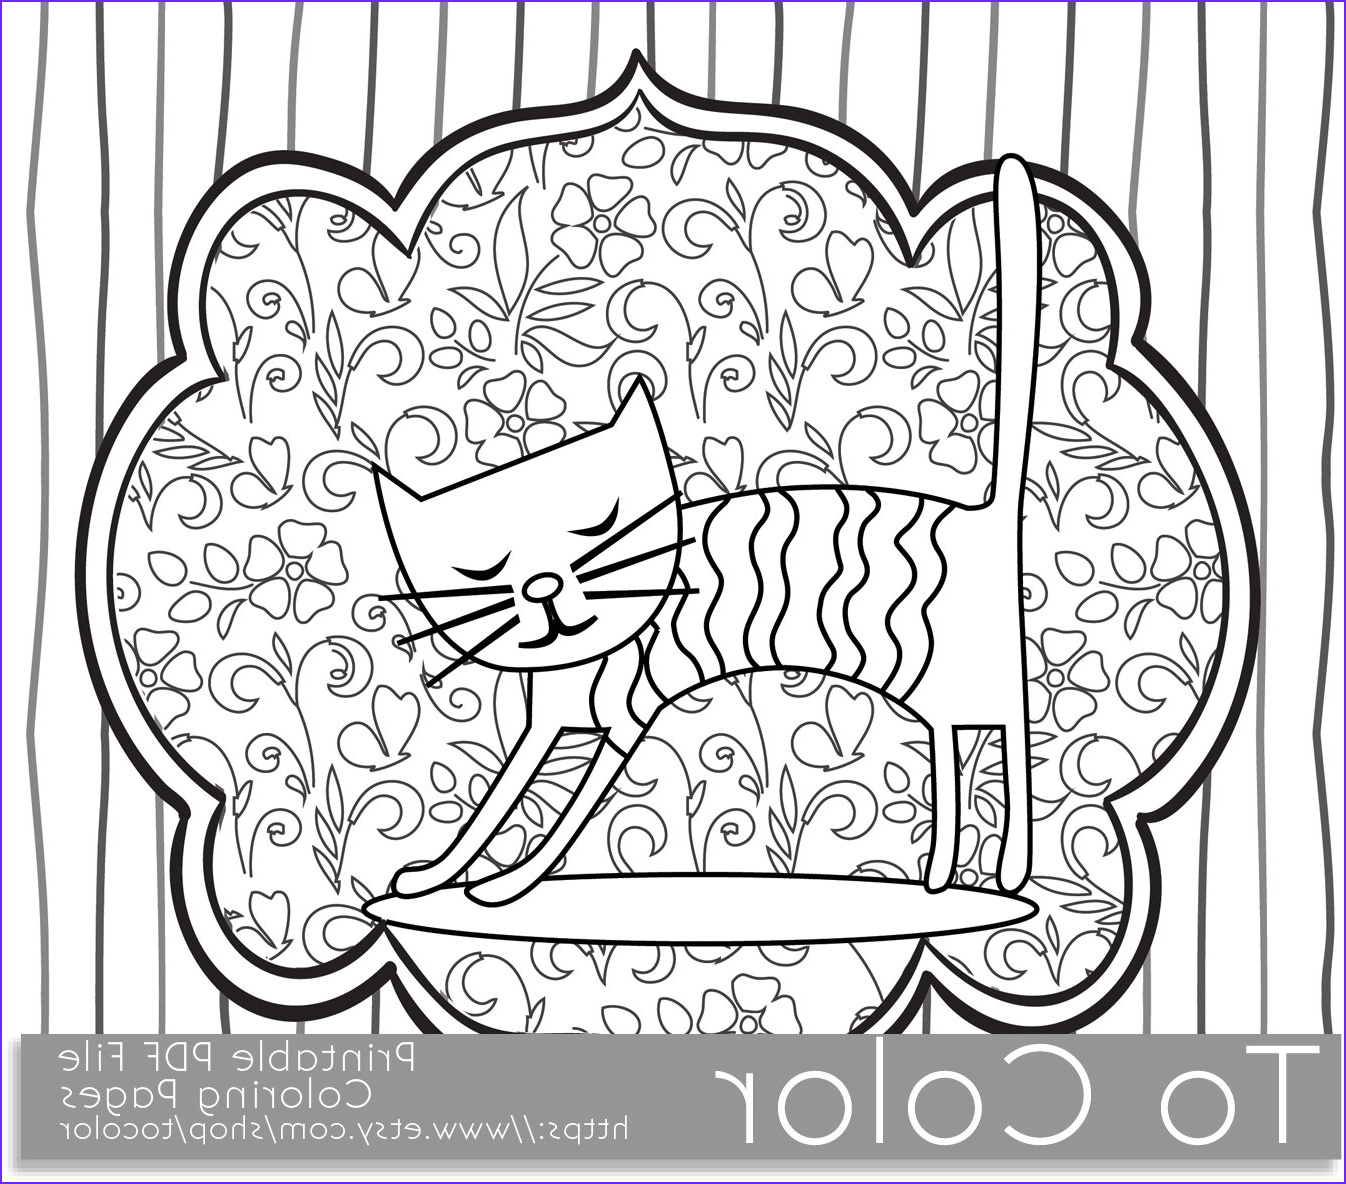 Coloring Book Pdf Elegant Gallery Printable Whimsical Cat Coloring Page for Adults Pdf by